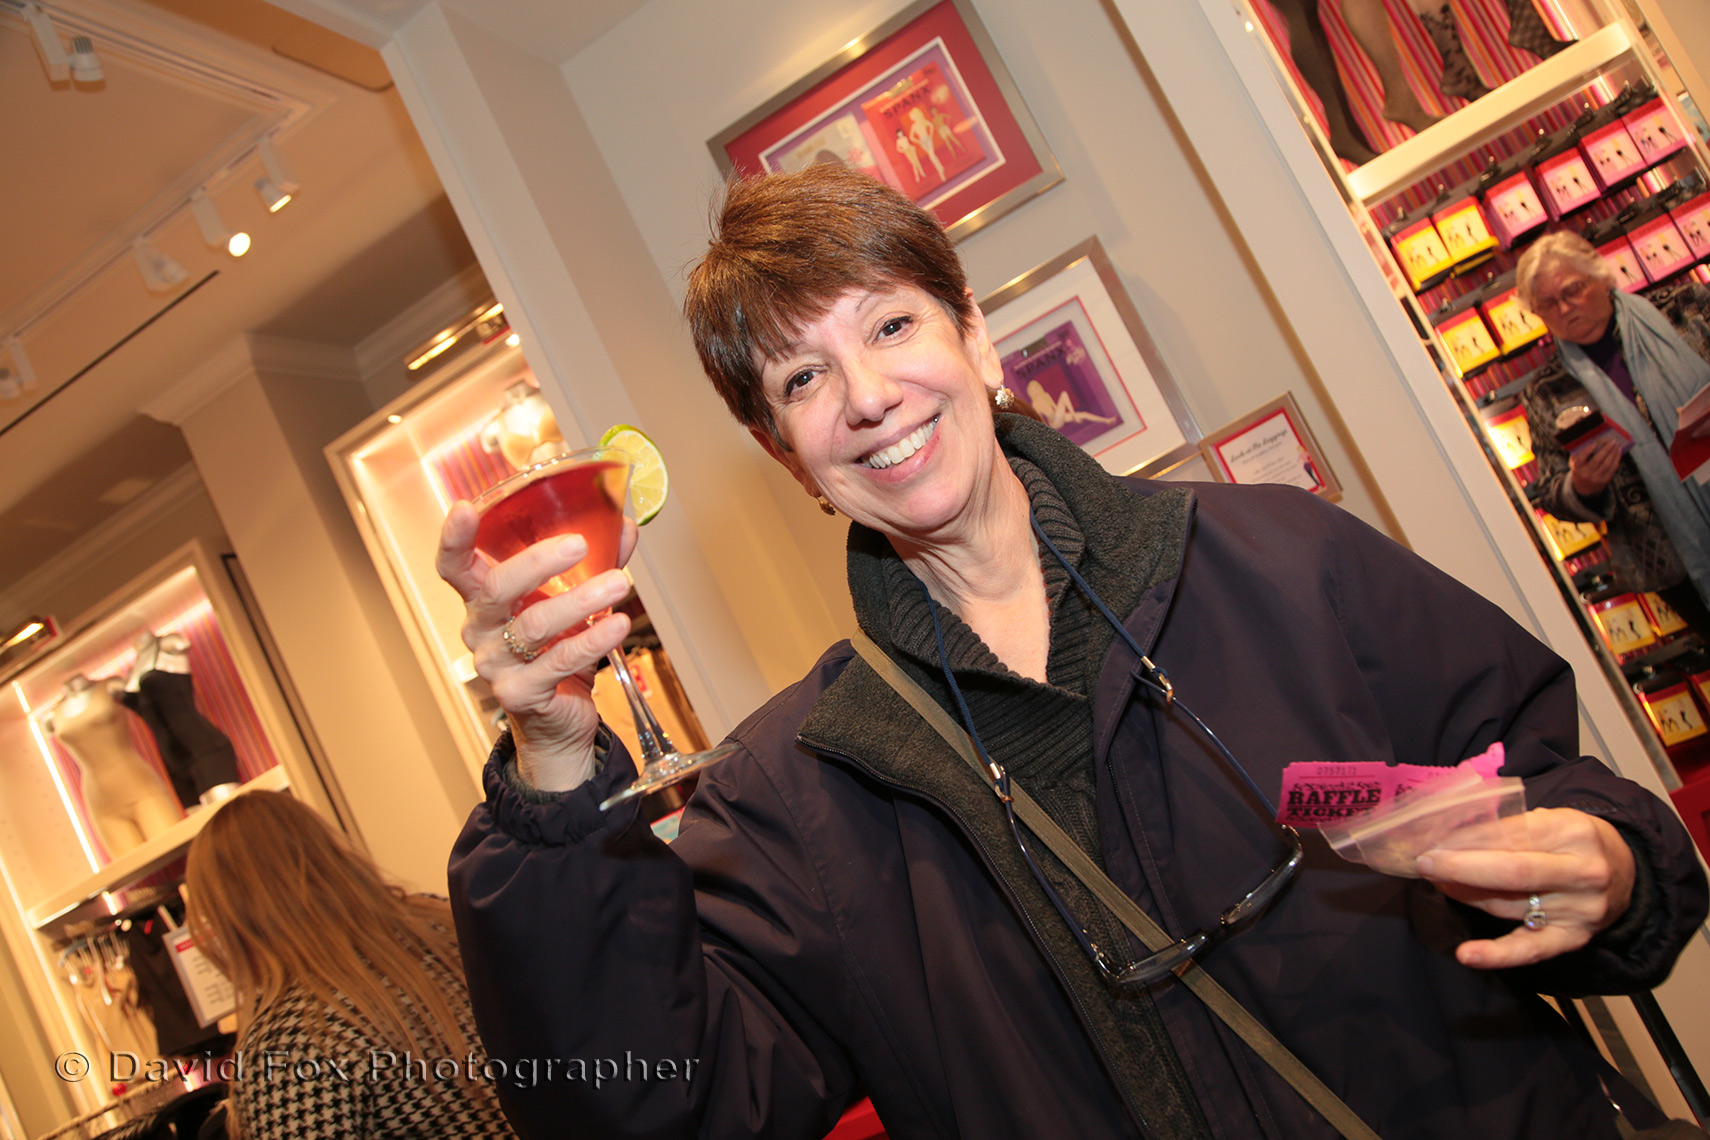 Enjoying a Beverage at the Spanx Natick Store Opening